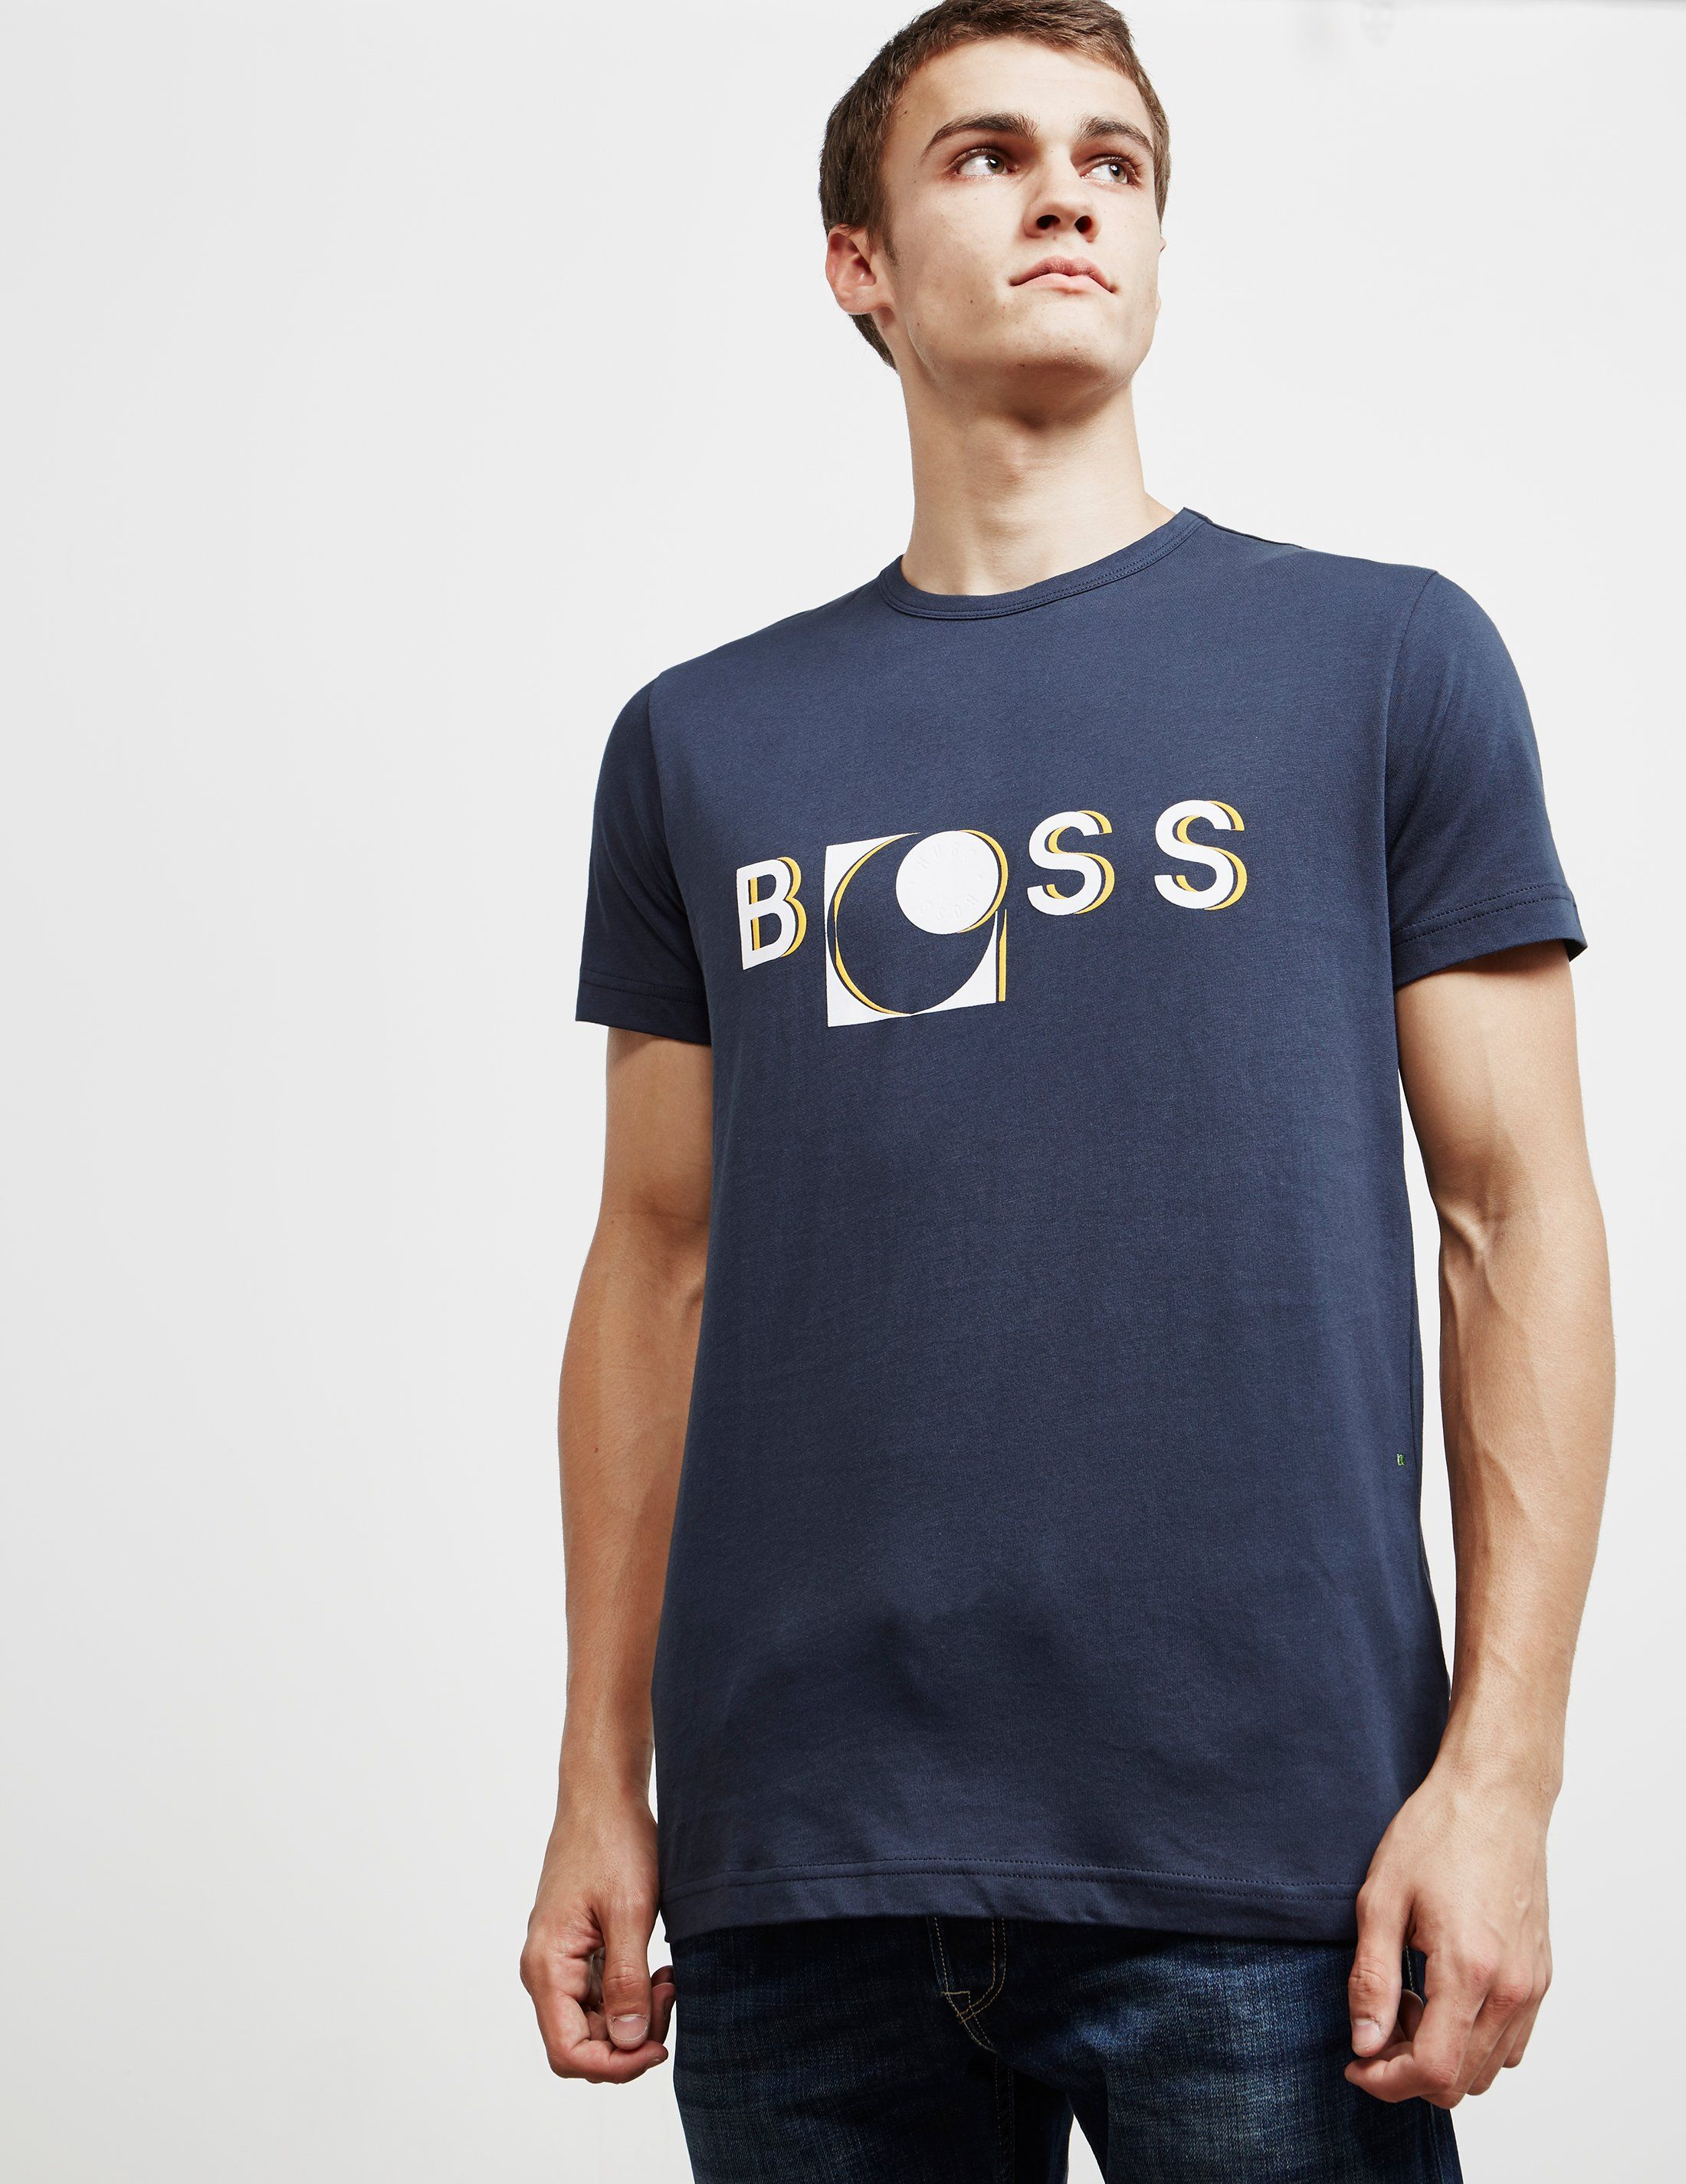 BOSS 3D Logo Short Sleeve T-Shirt